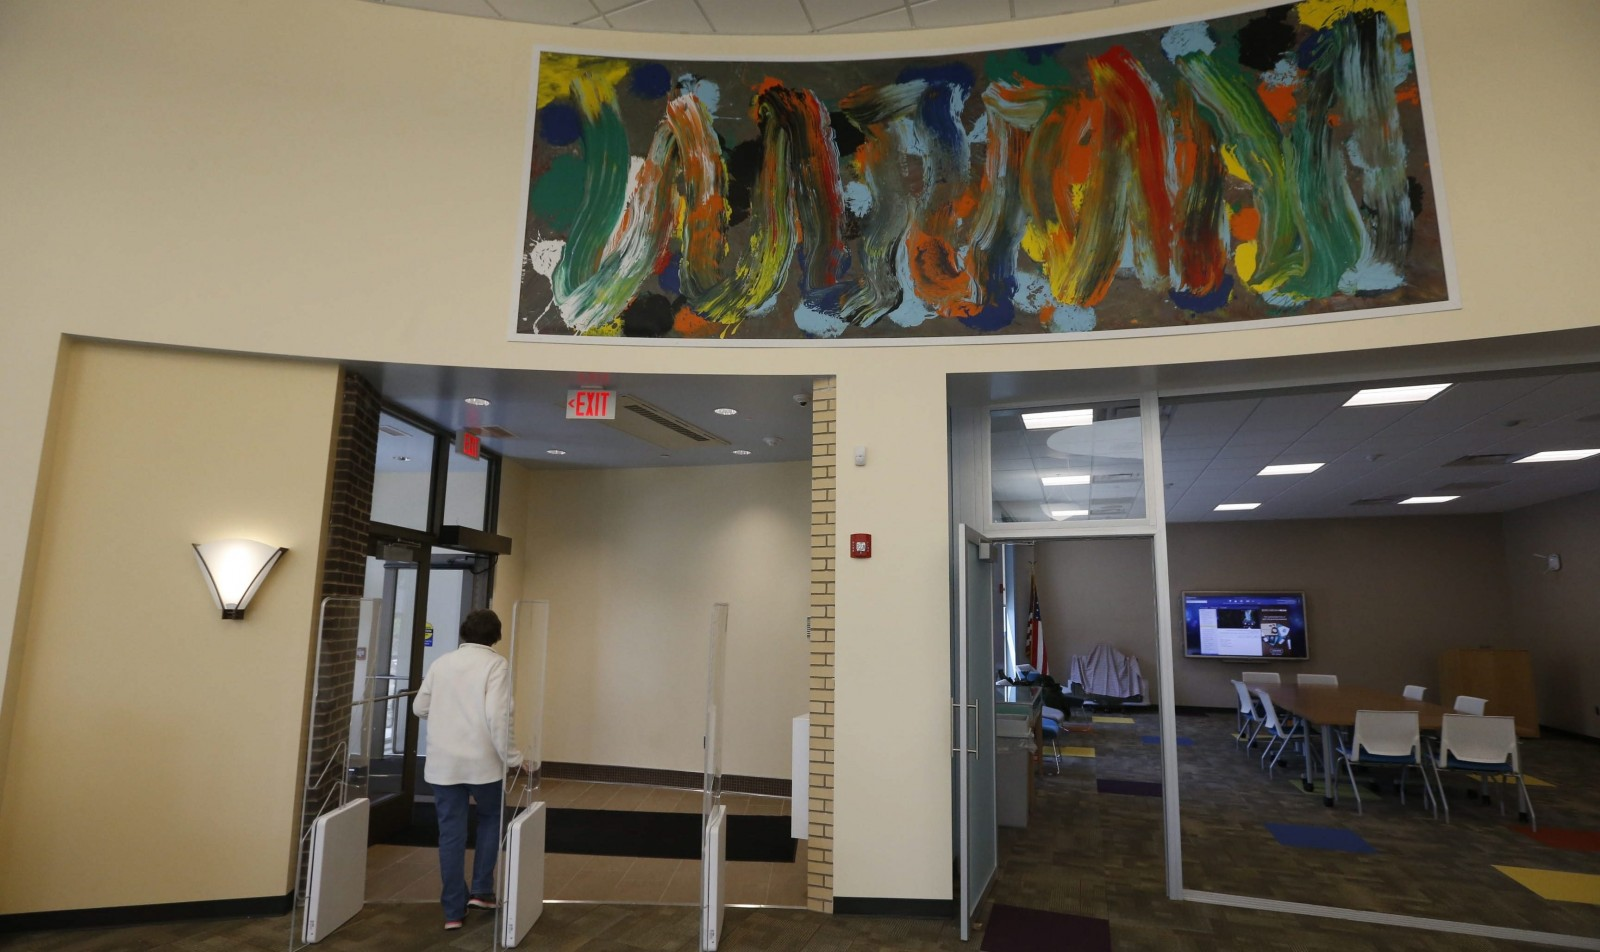 The recently remodeled and expanded Hamburg Public Library features abstract art from Charles Clough. (Robert Kirkham/Buffalo News file photo)